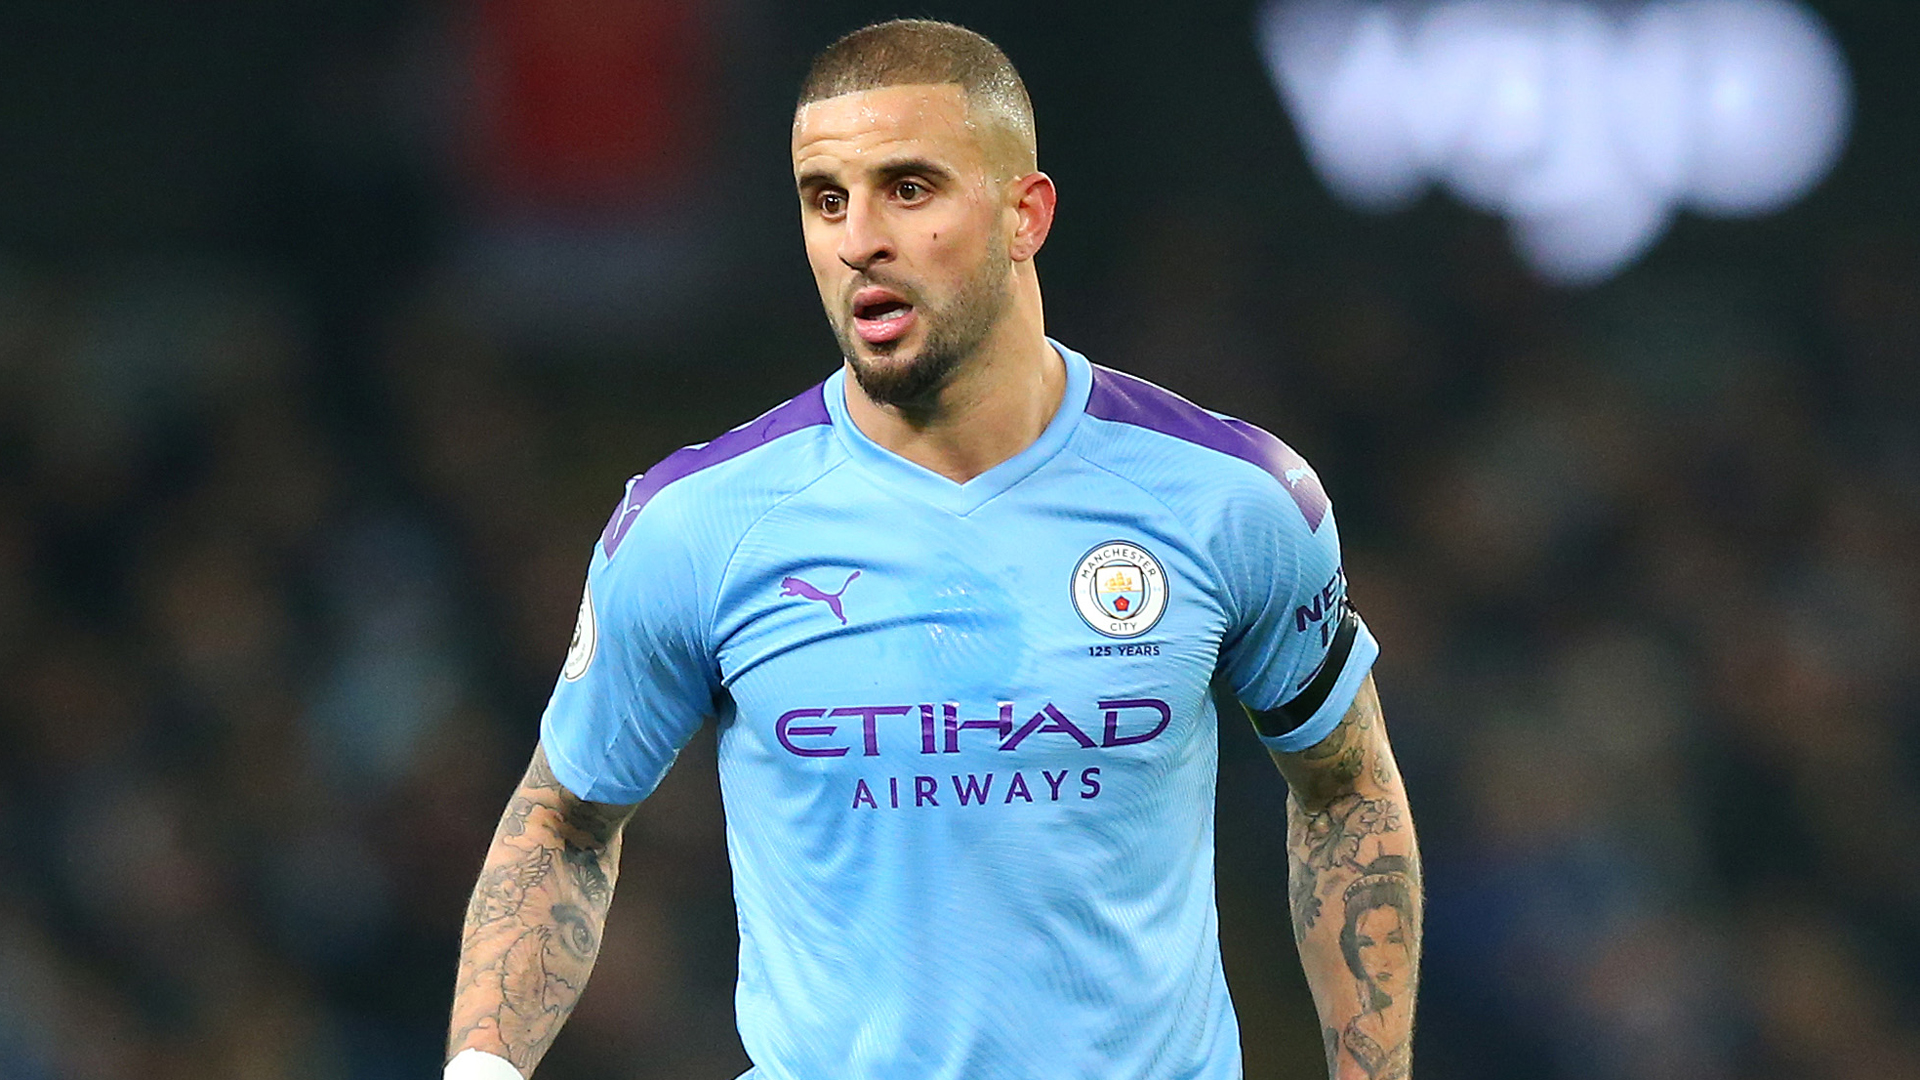 Champions League glory would take Man City to the 'next pedestal', says Kyle Walker